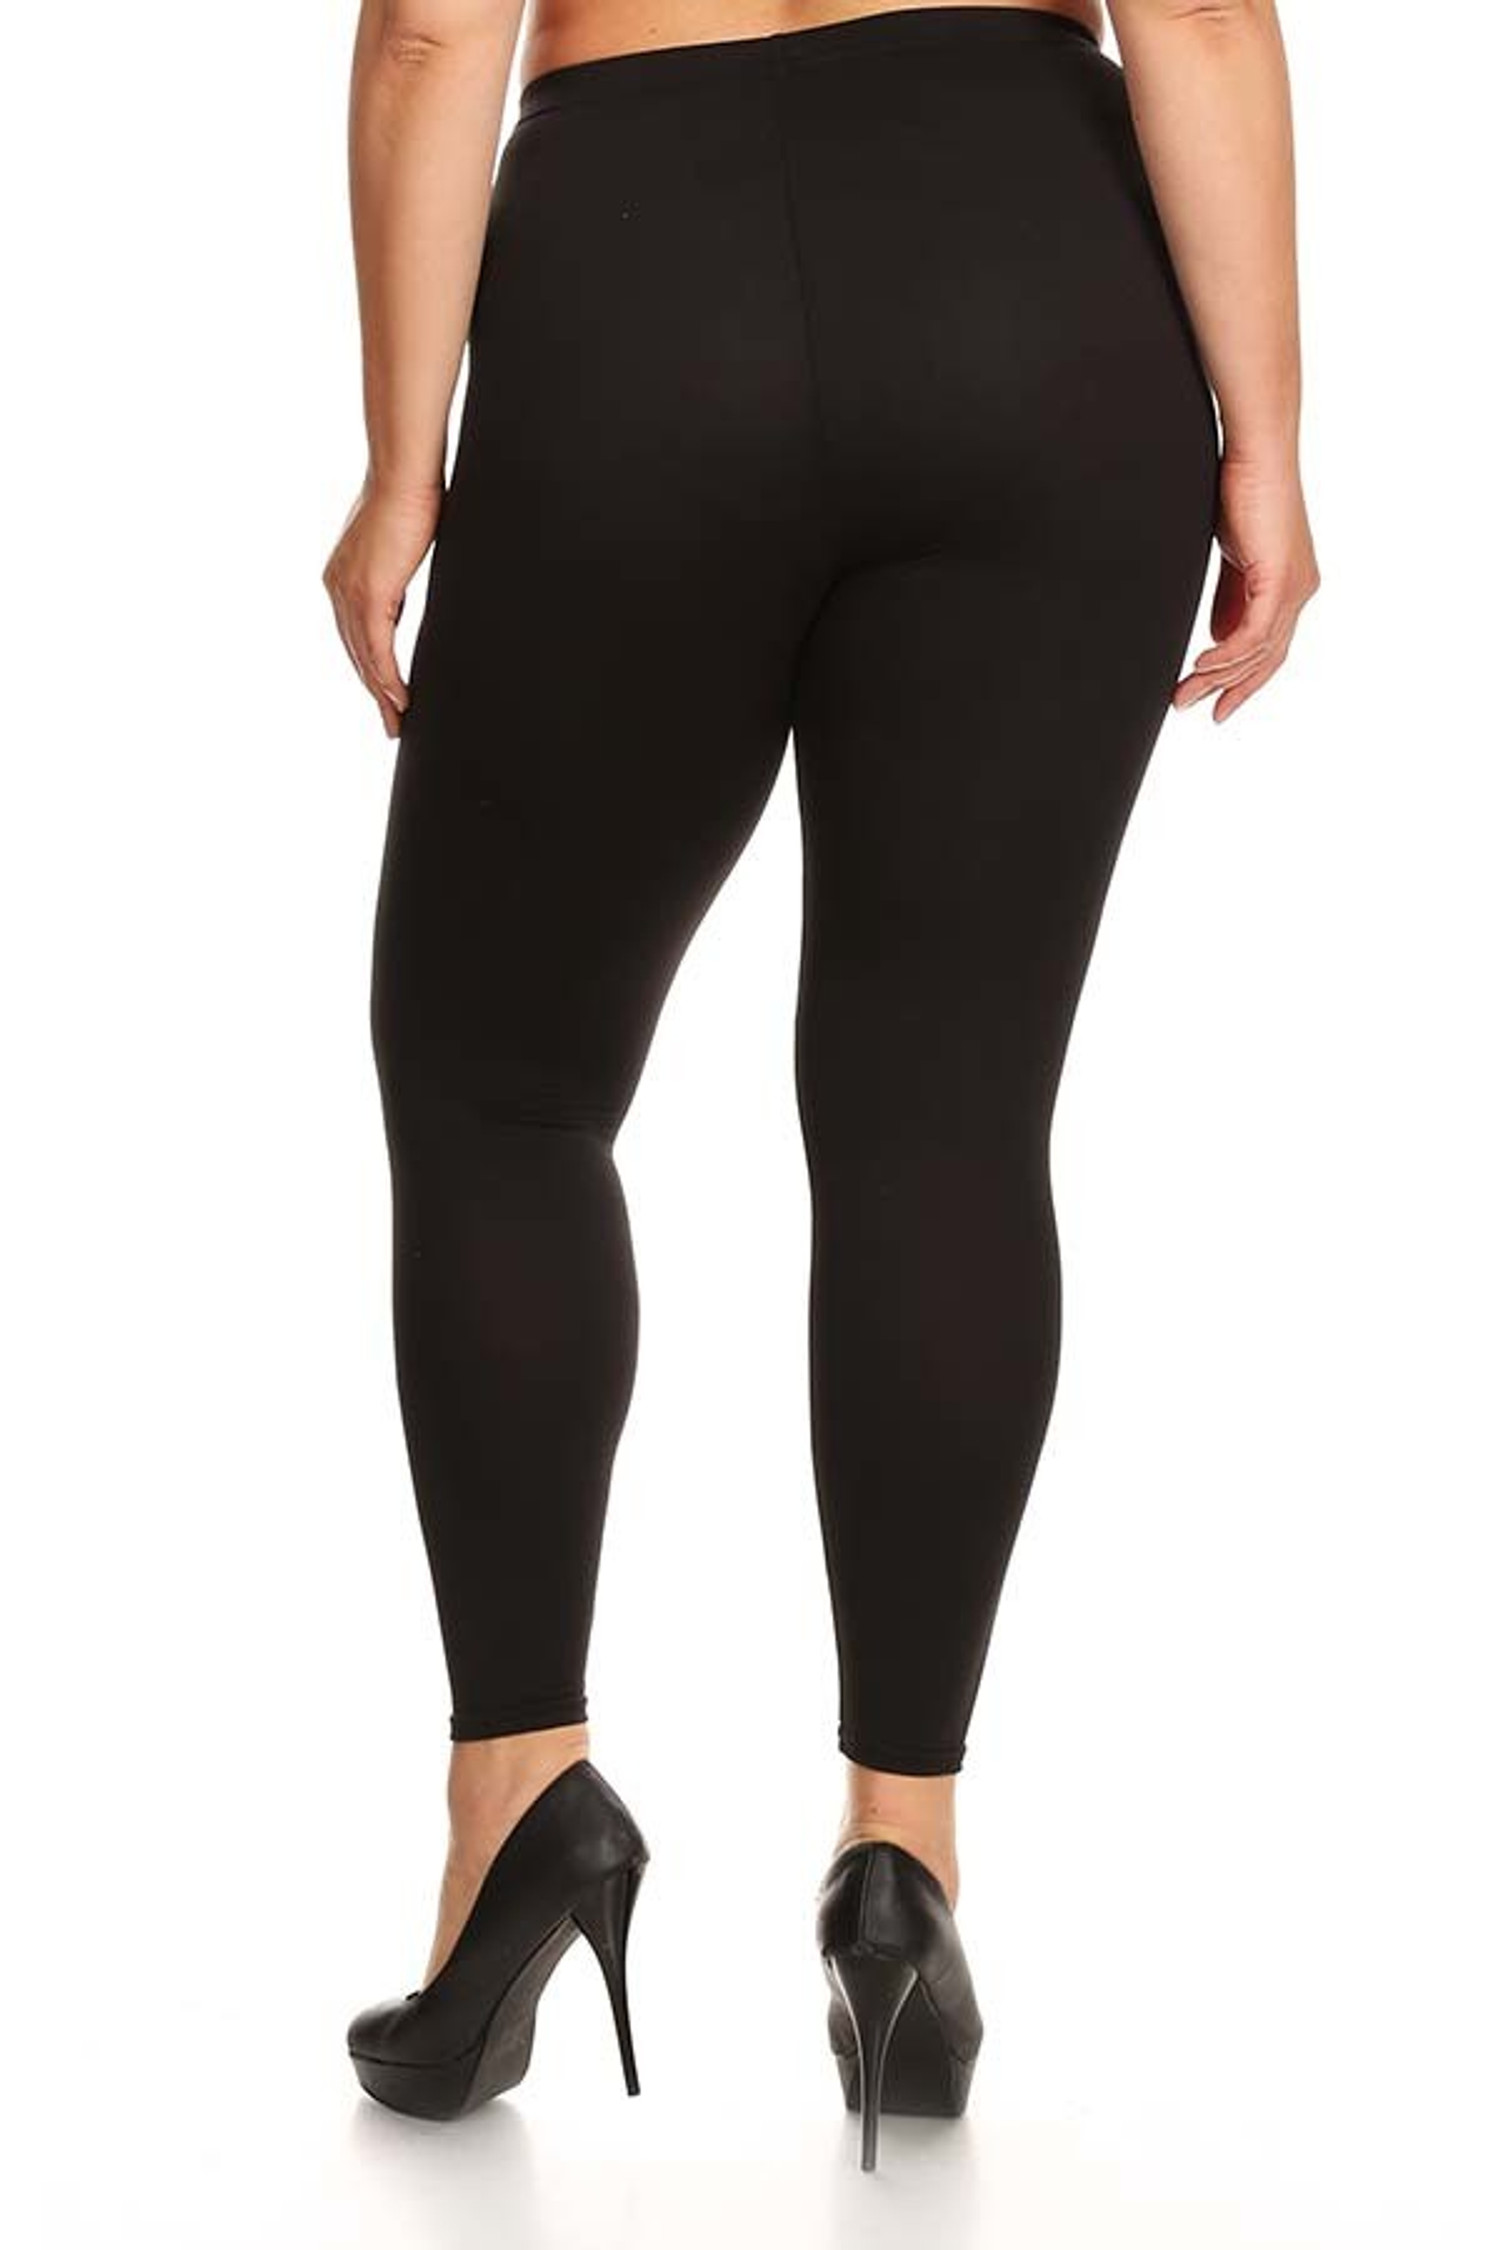 Solid Poly Brushed Basic Leggings - Plus Size